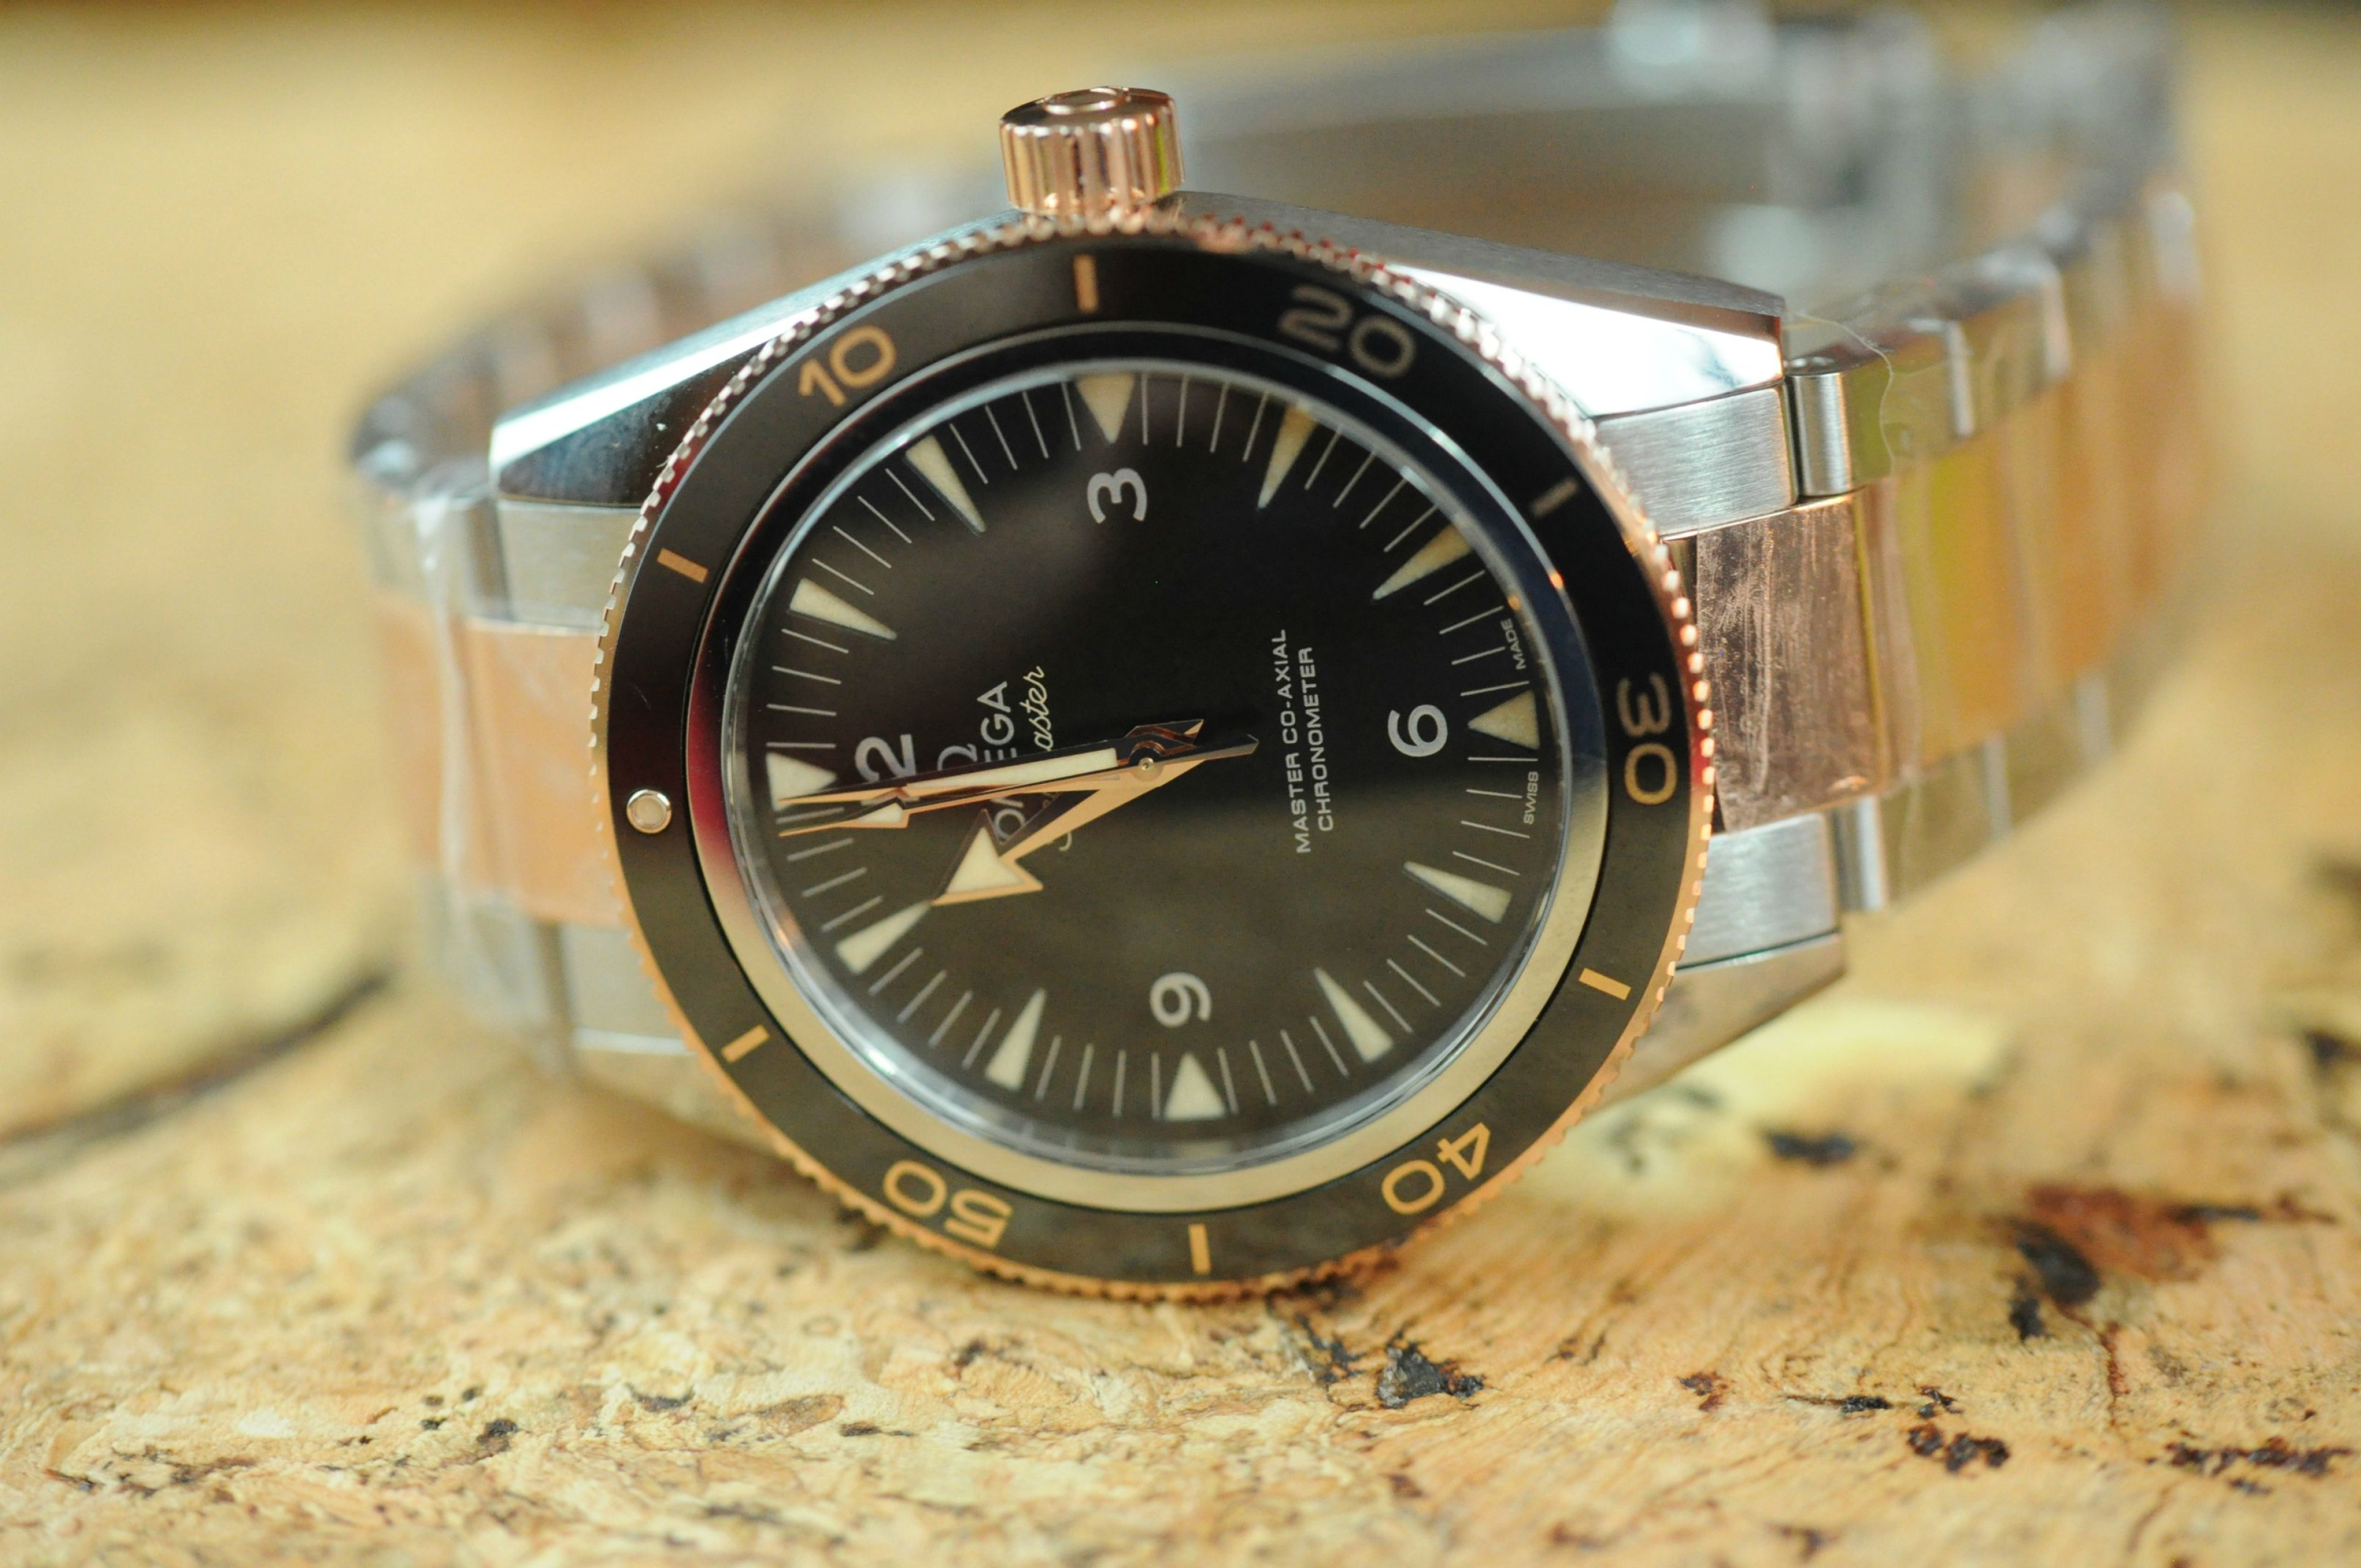 Omega Authorized Dealer >> BNIB Omega Seamaster 300 Master Co-Axial Stainless & Cedna Gold Ref. 233.20.41.21.01.001 - SOLD